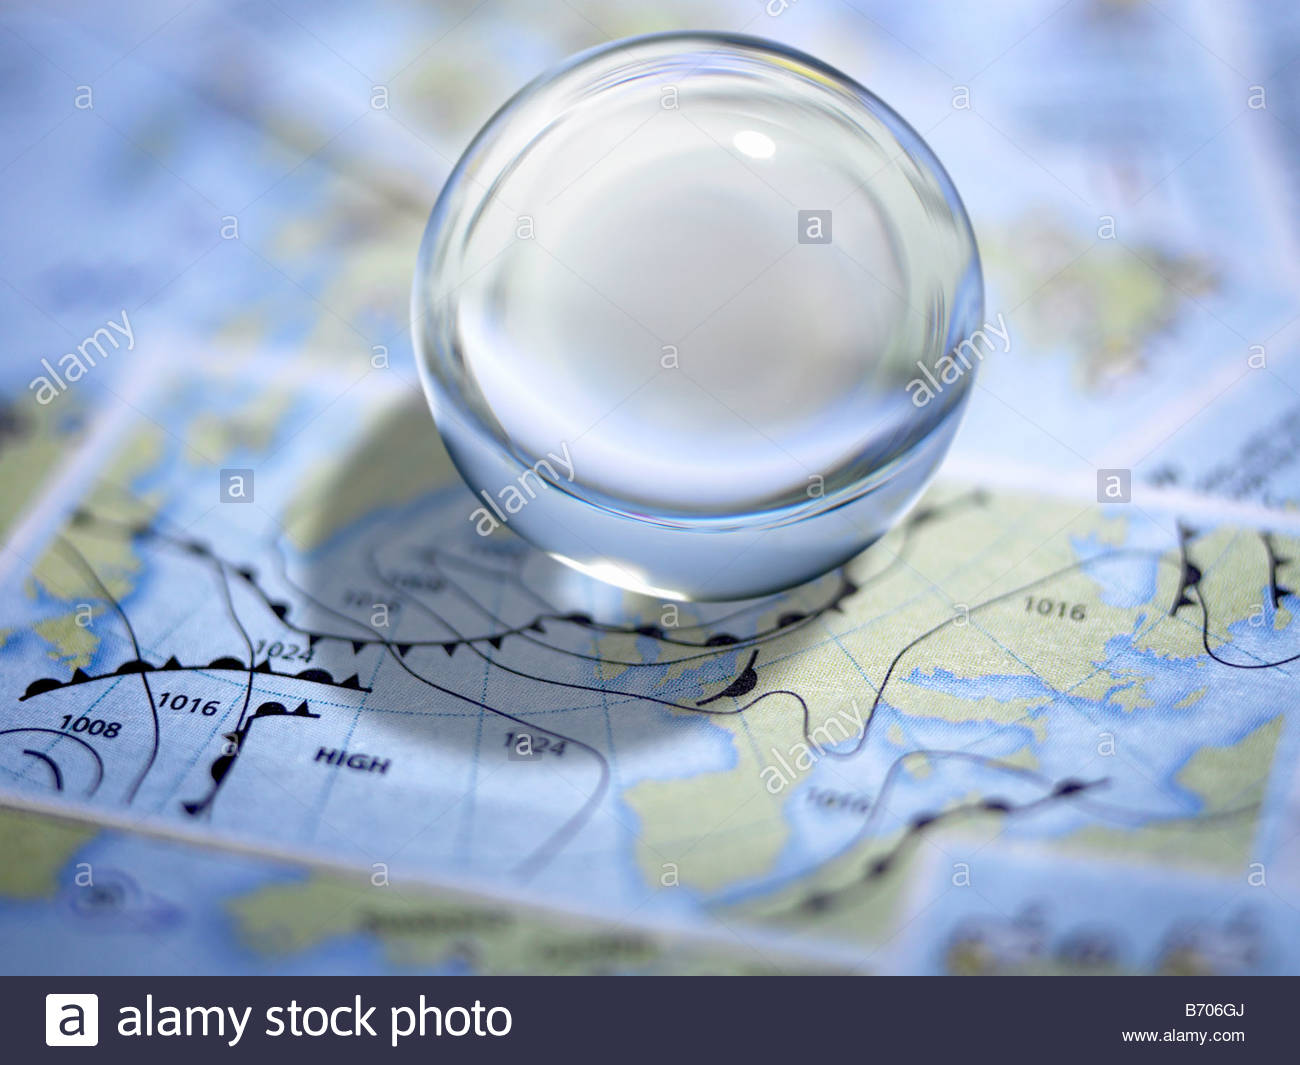 Close up of glass ball on map - Stock Image